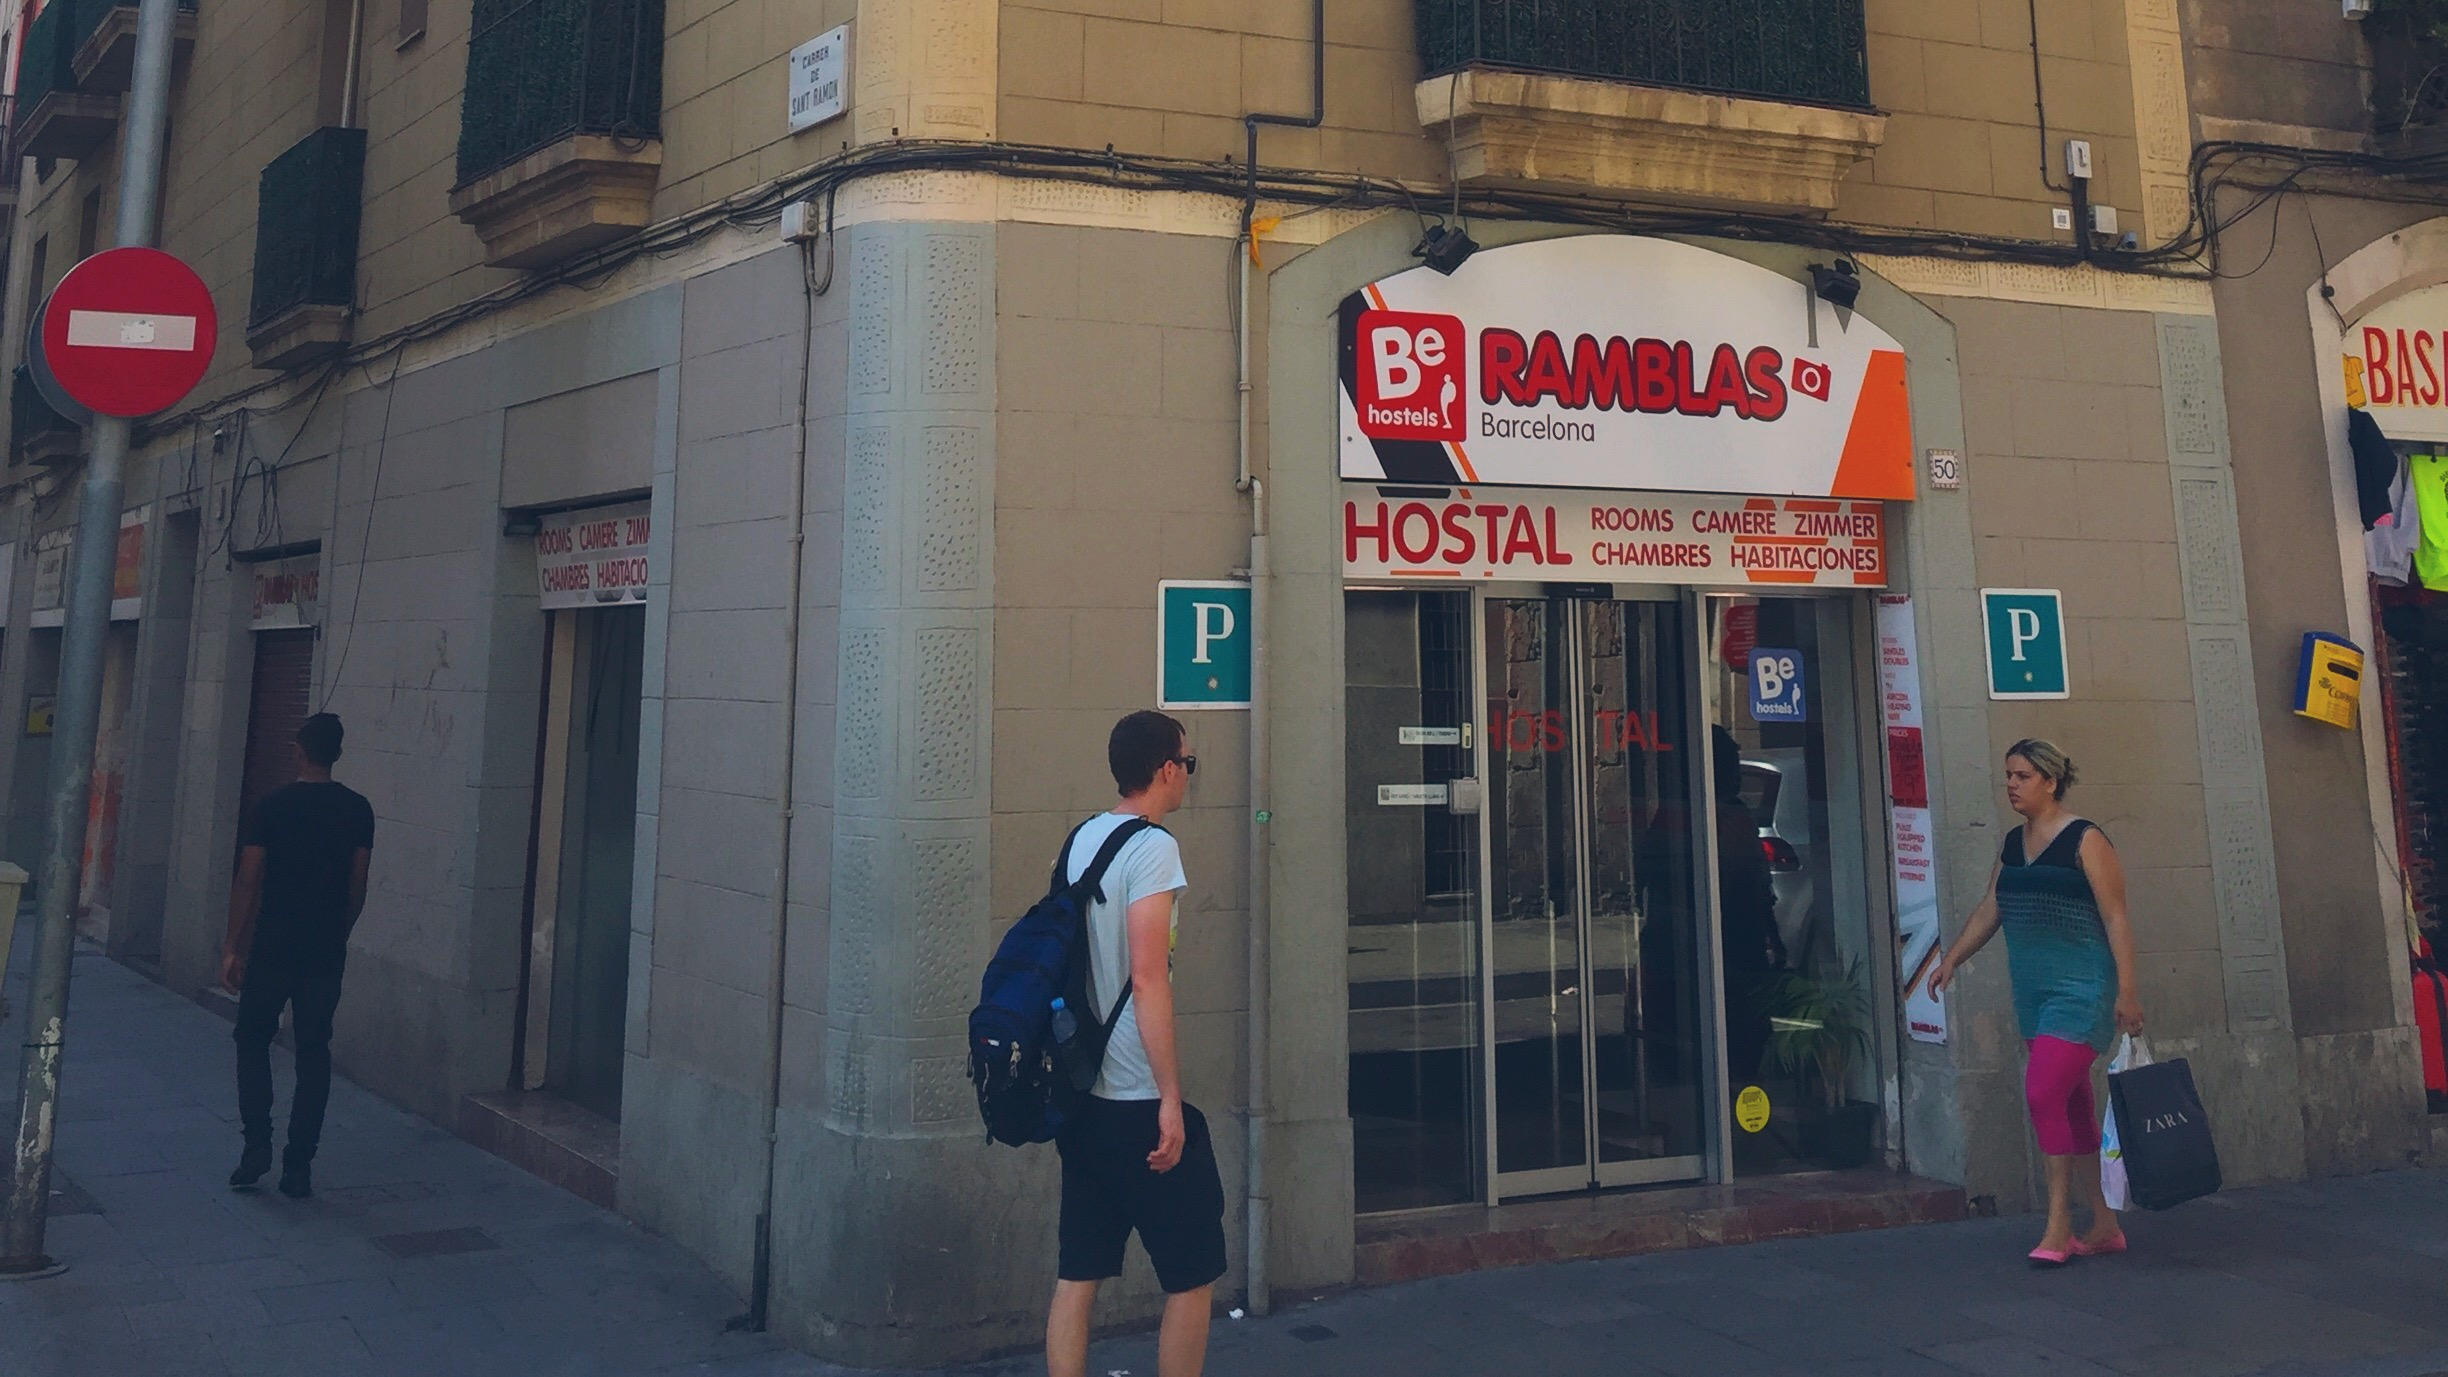 Hostel Review: Be Ramblas Hostel, Barcelona, Spain